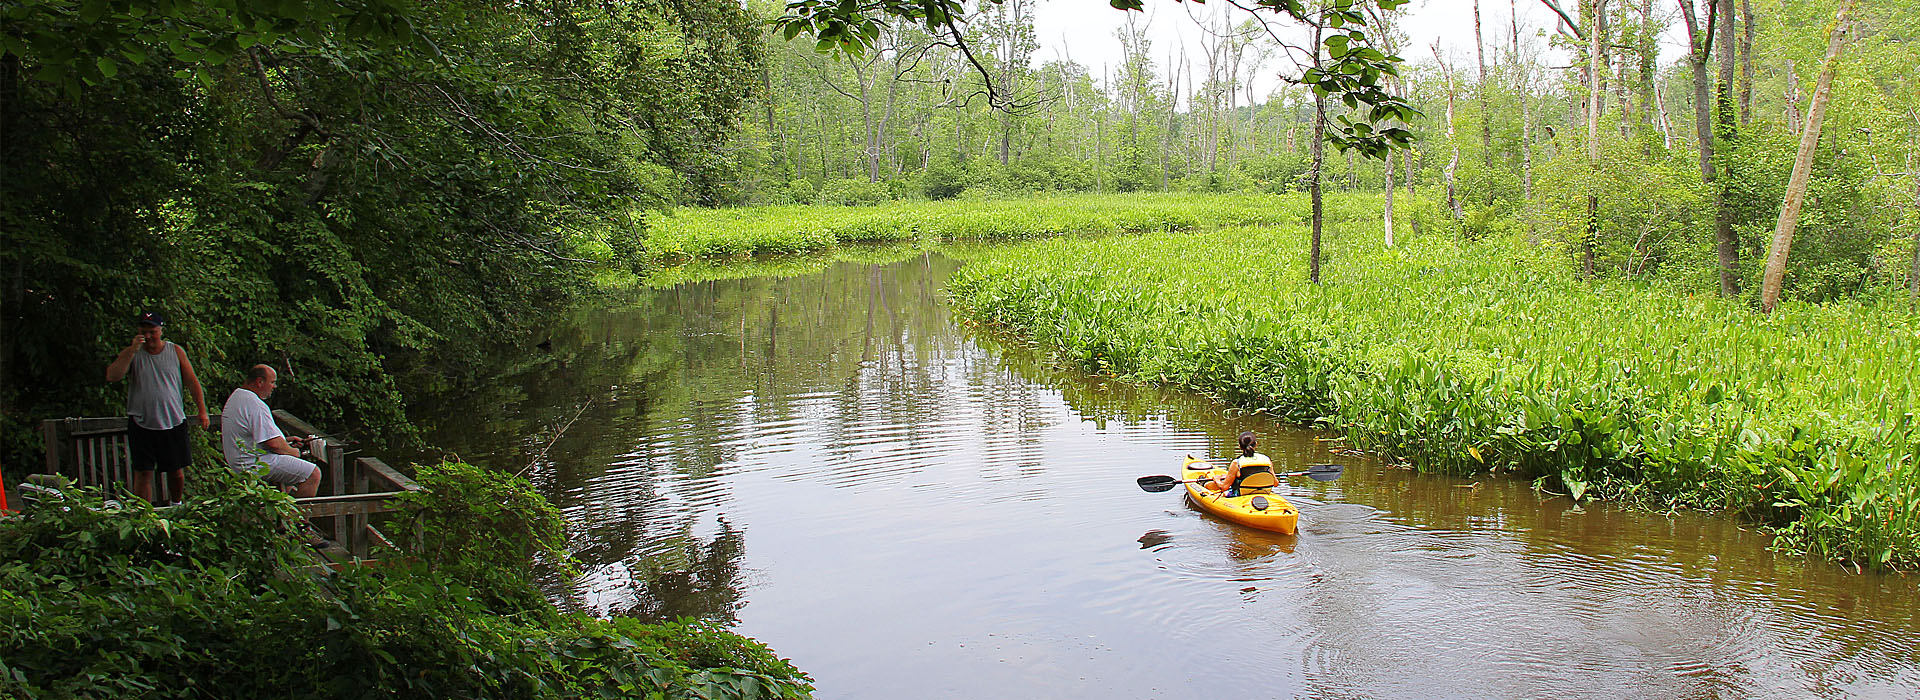 Fish the creek or explore in a kayak.